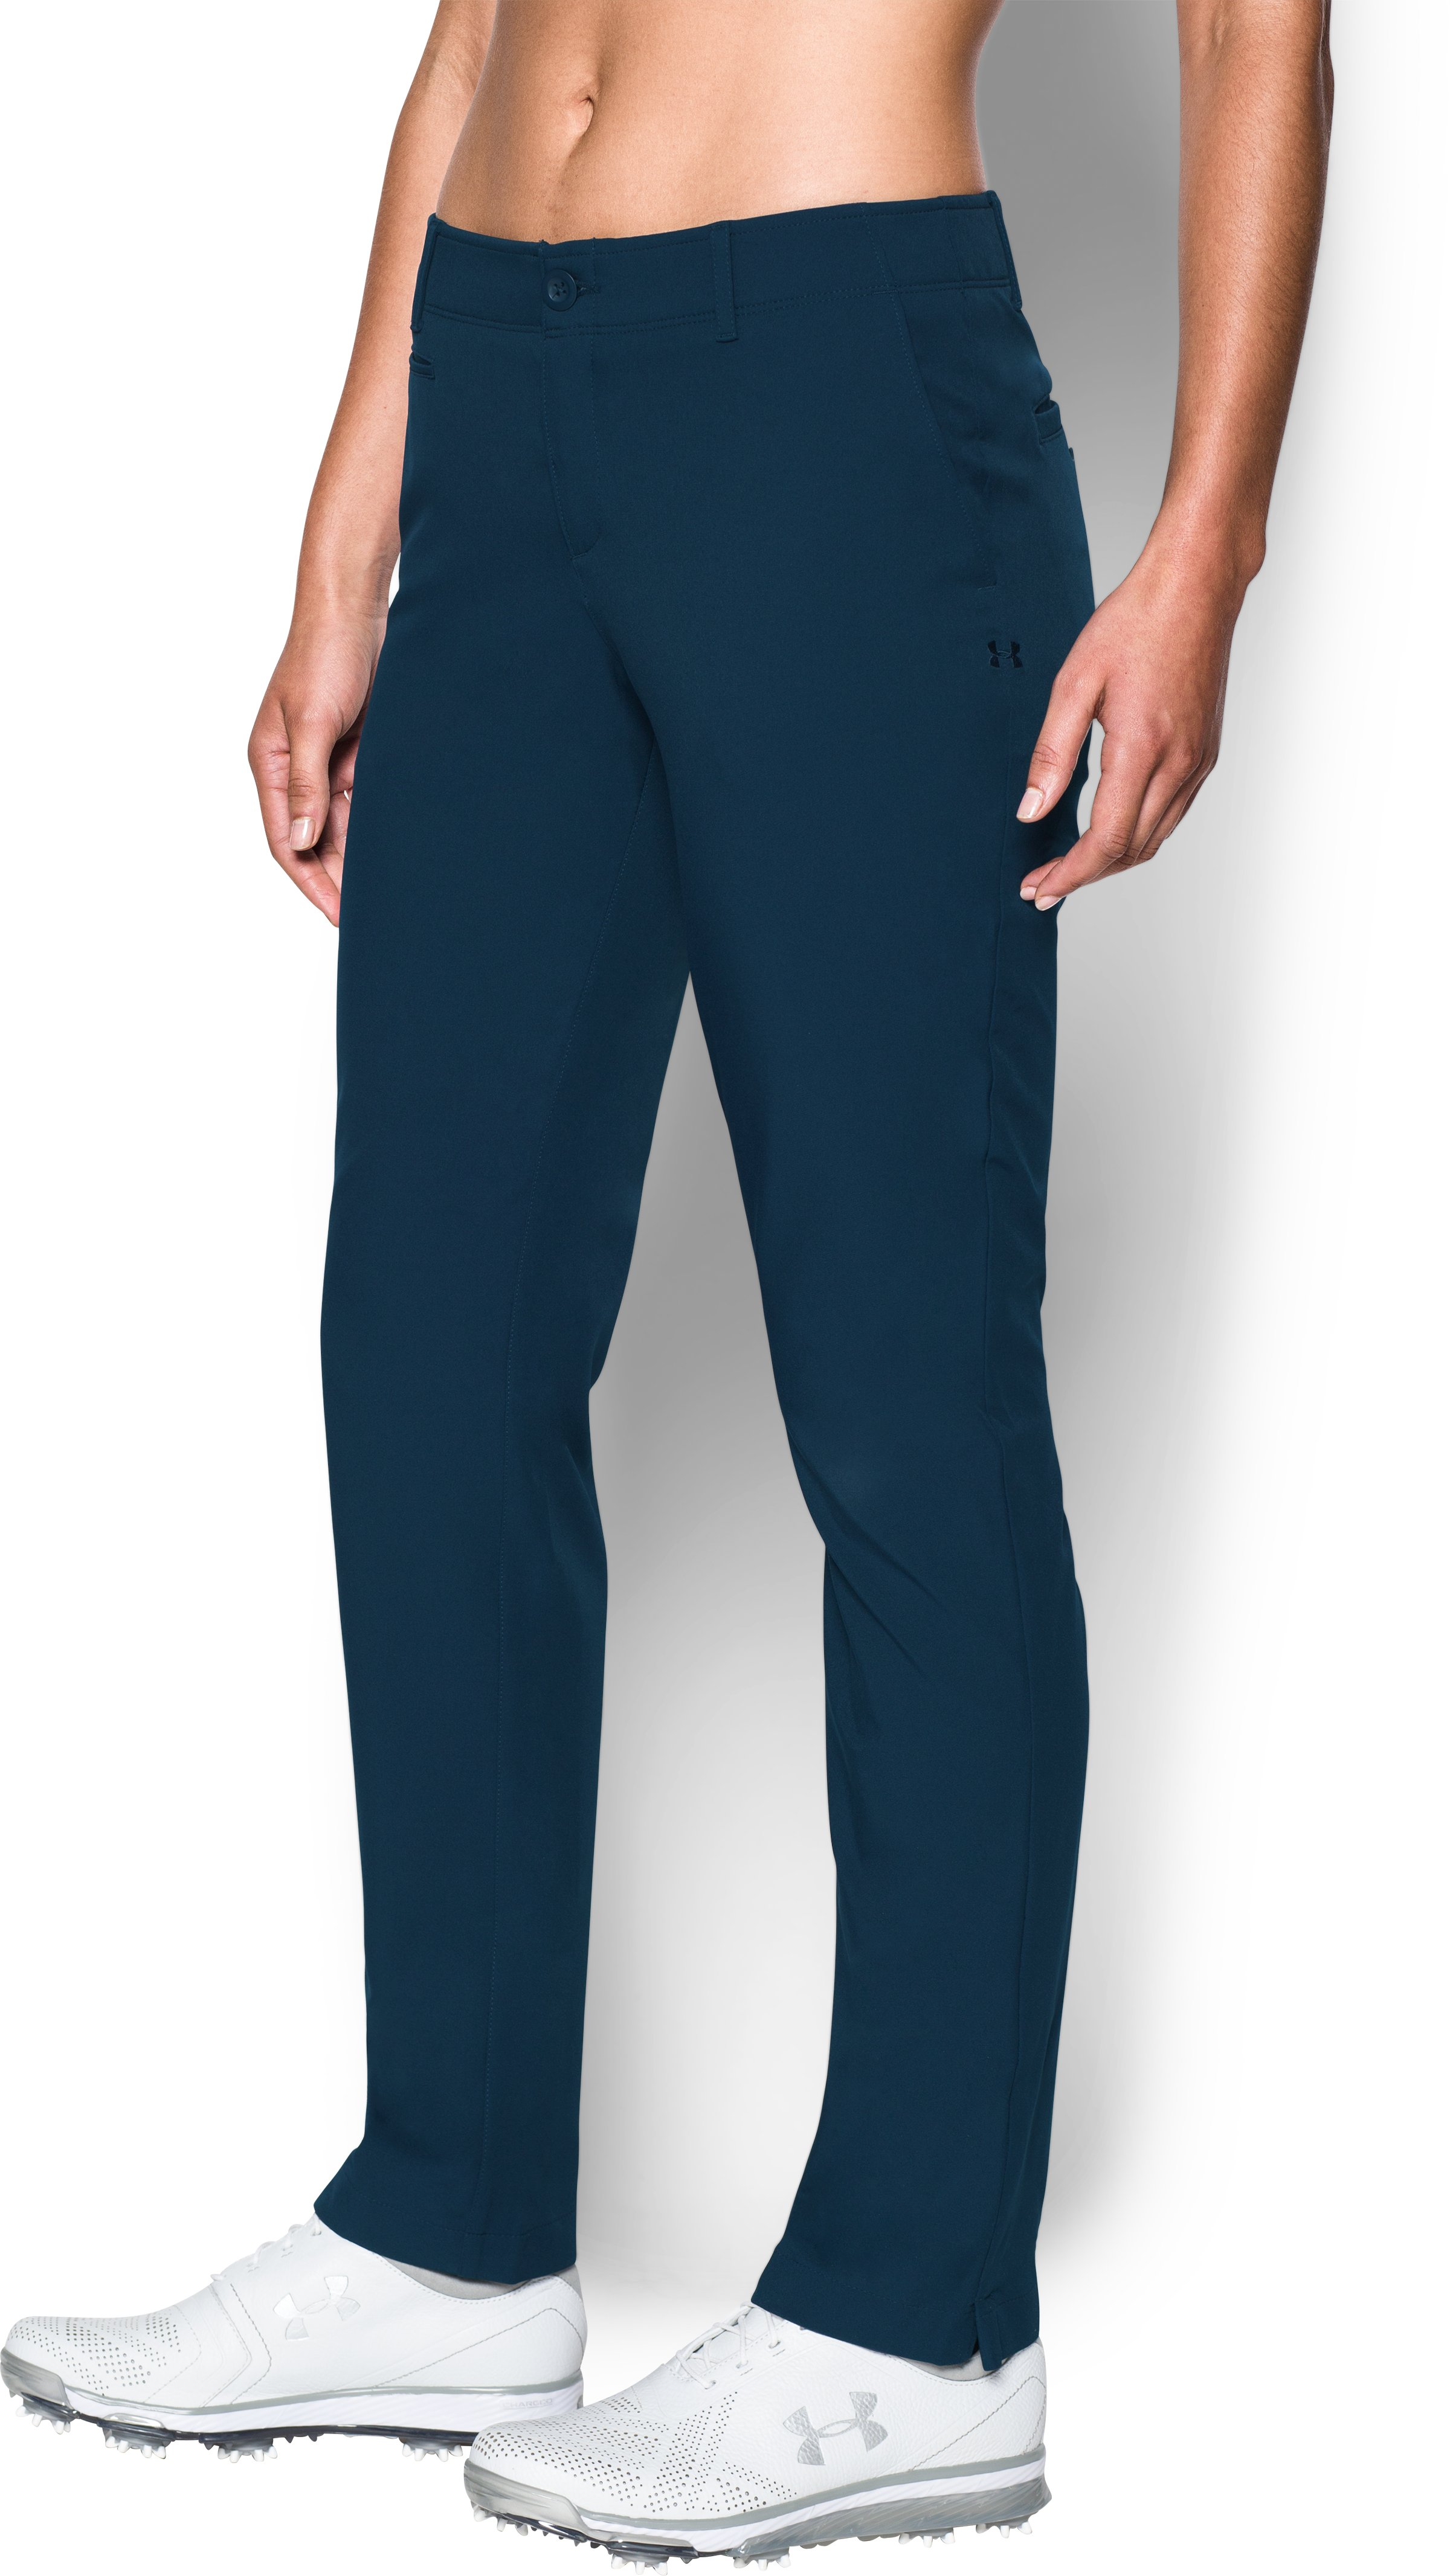 Women's UA Links Pants, Academy, zoomed image